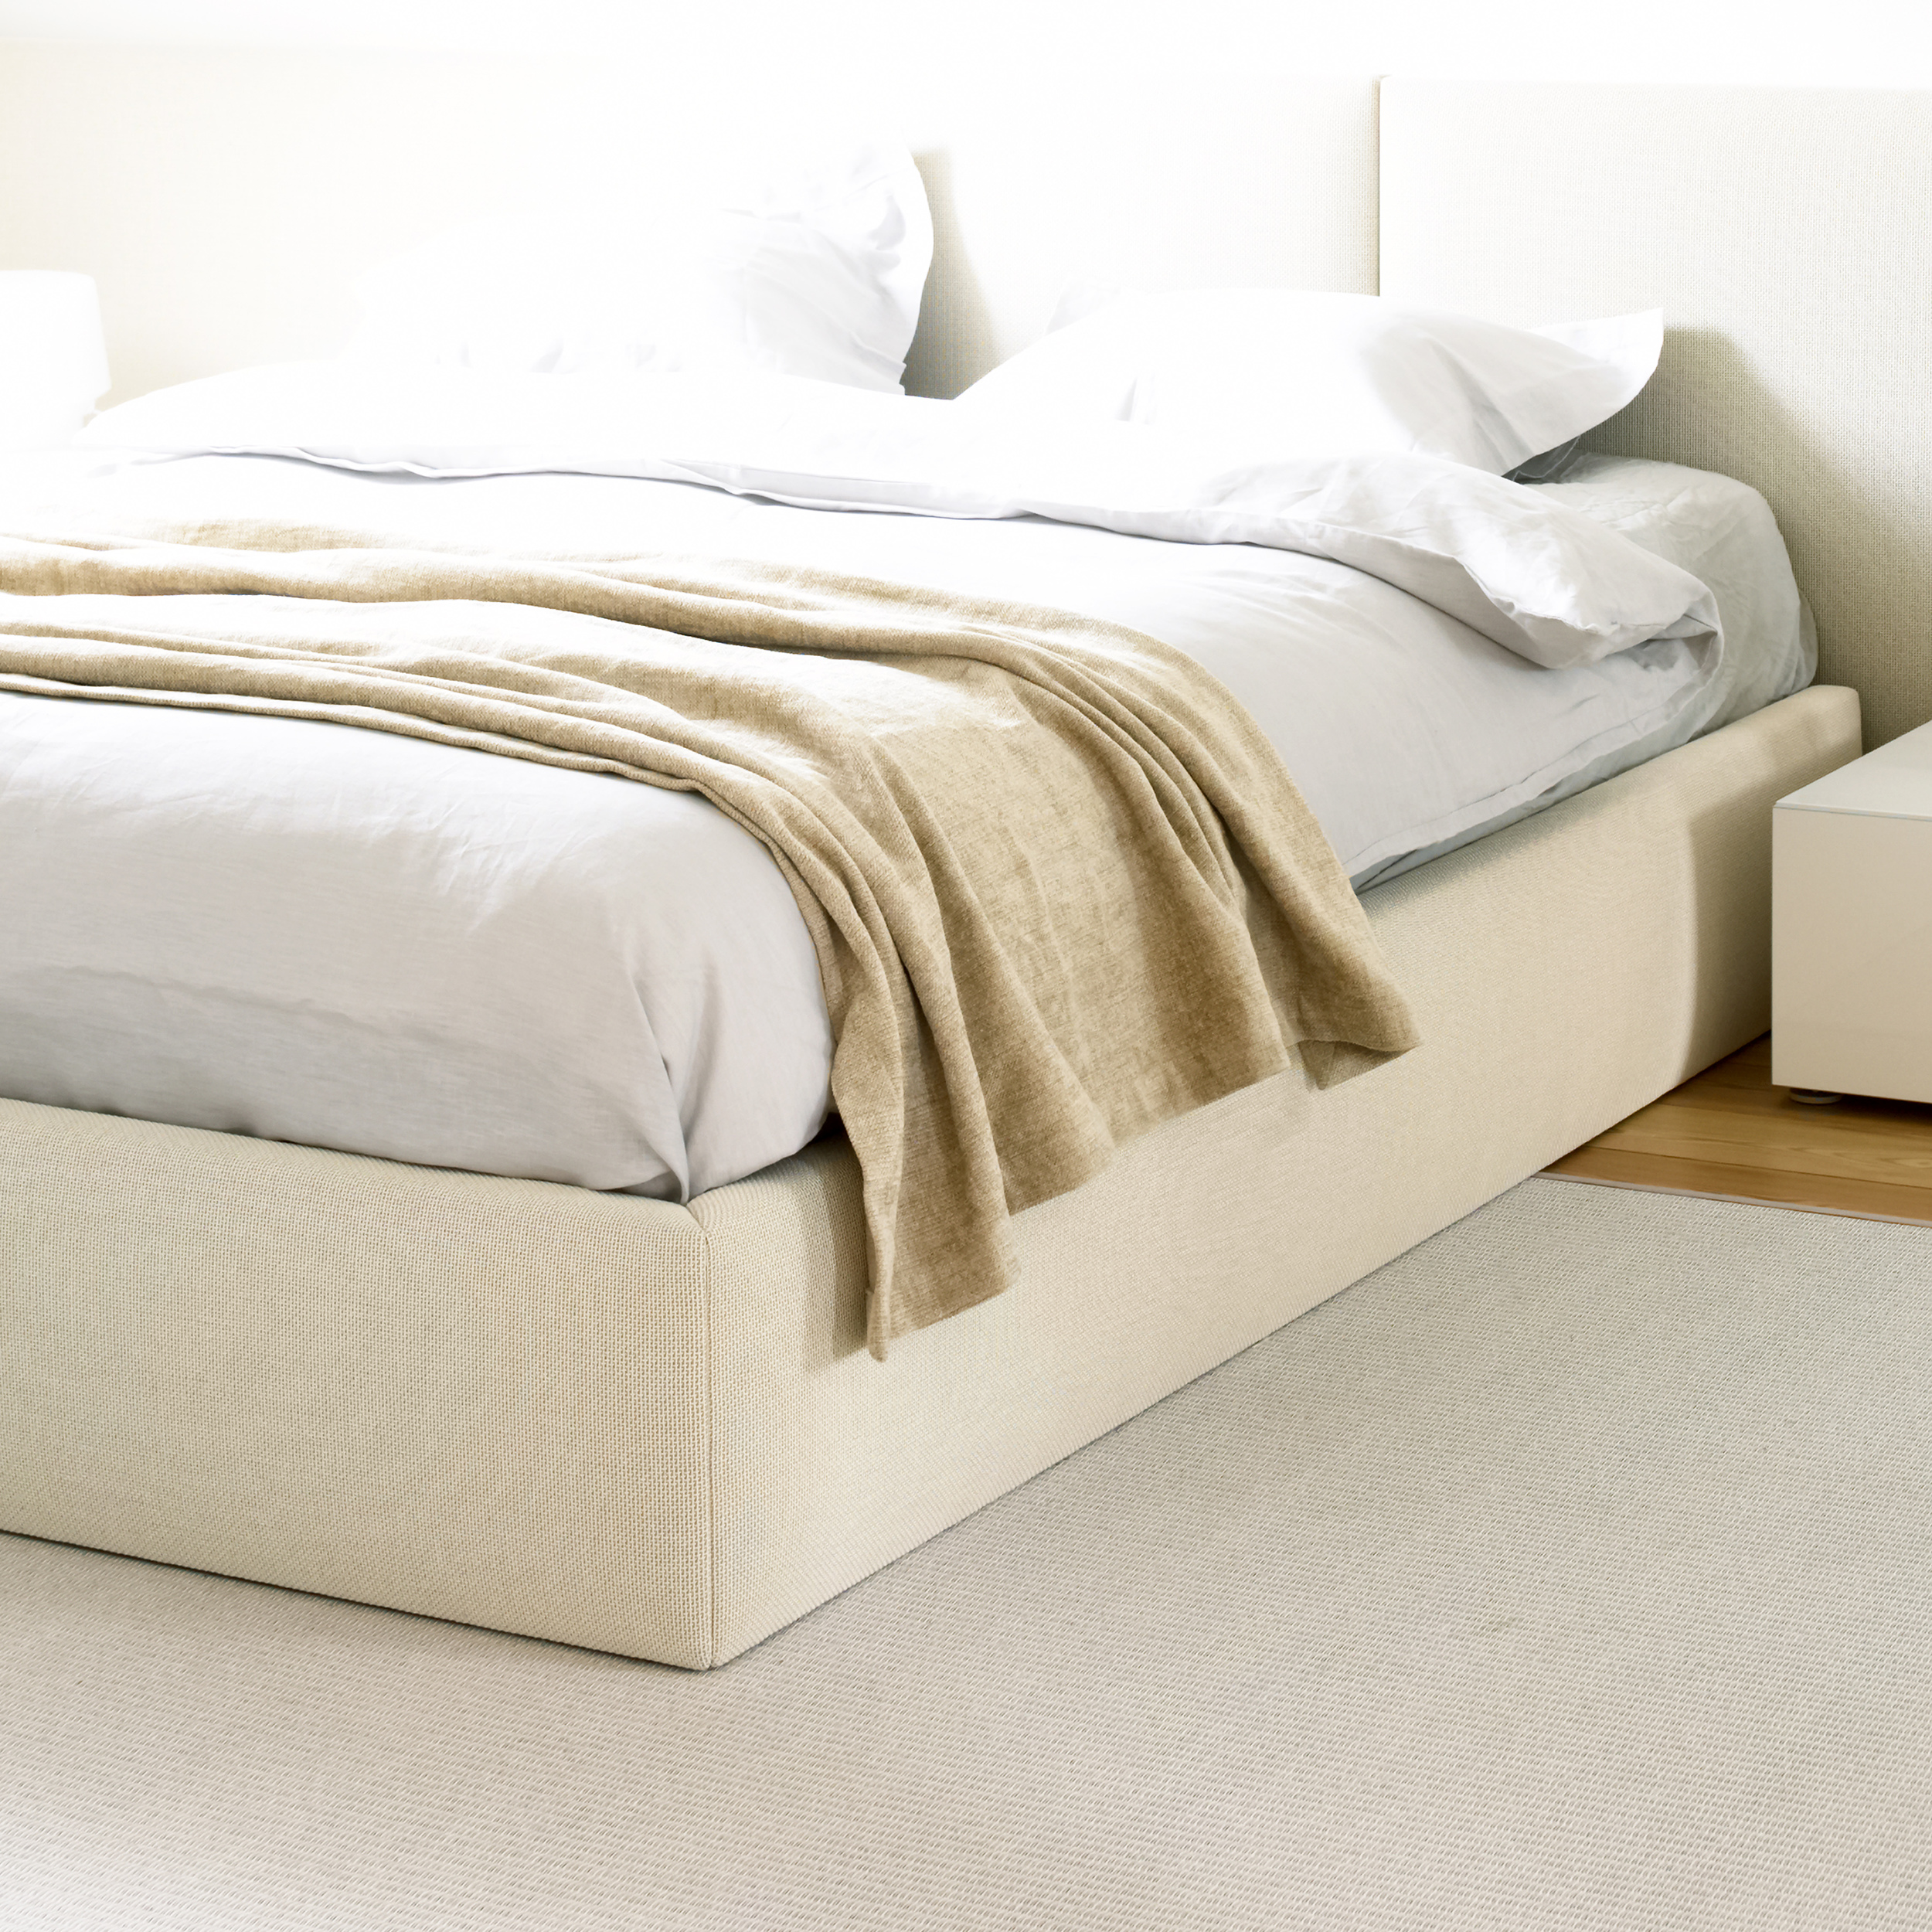 47005 Bed Frame, upholstered with Sand paper yarn cotton fabric